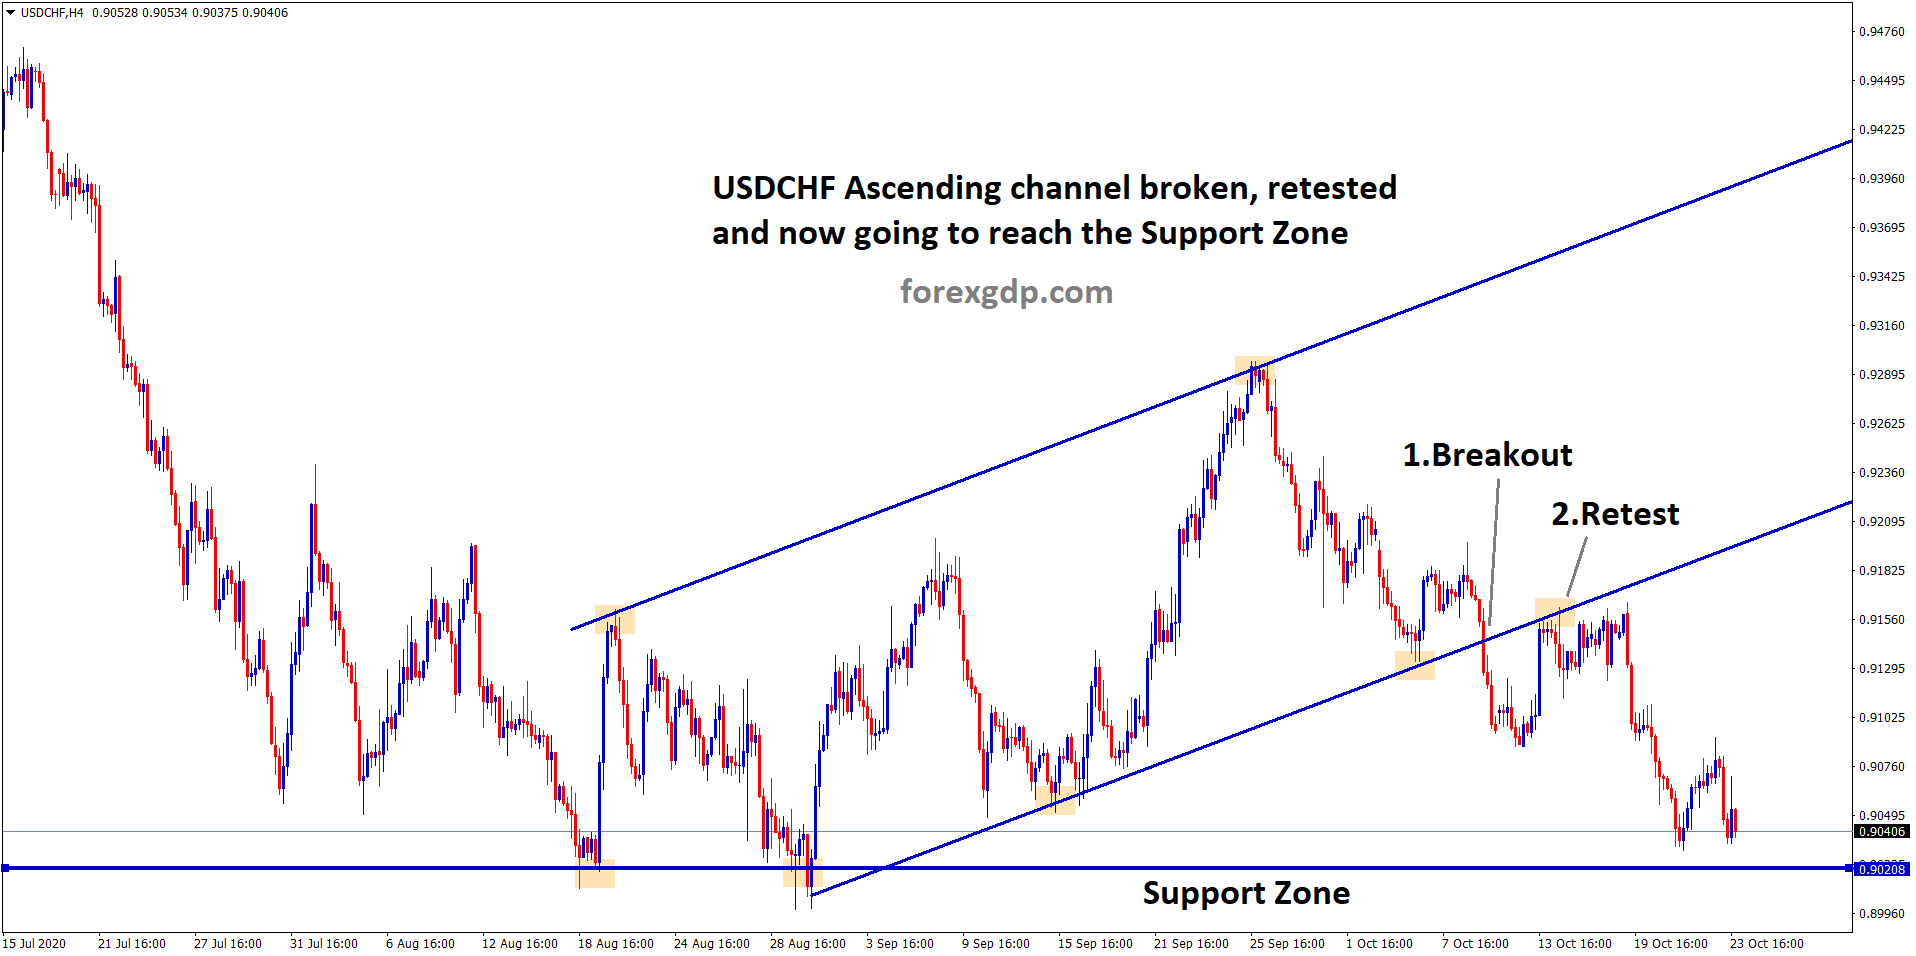 usdchf broken the ascending channel bottom retested and now going to reach the support